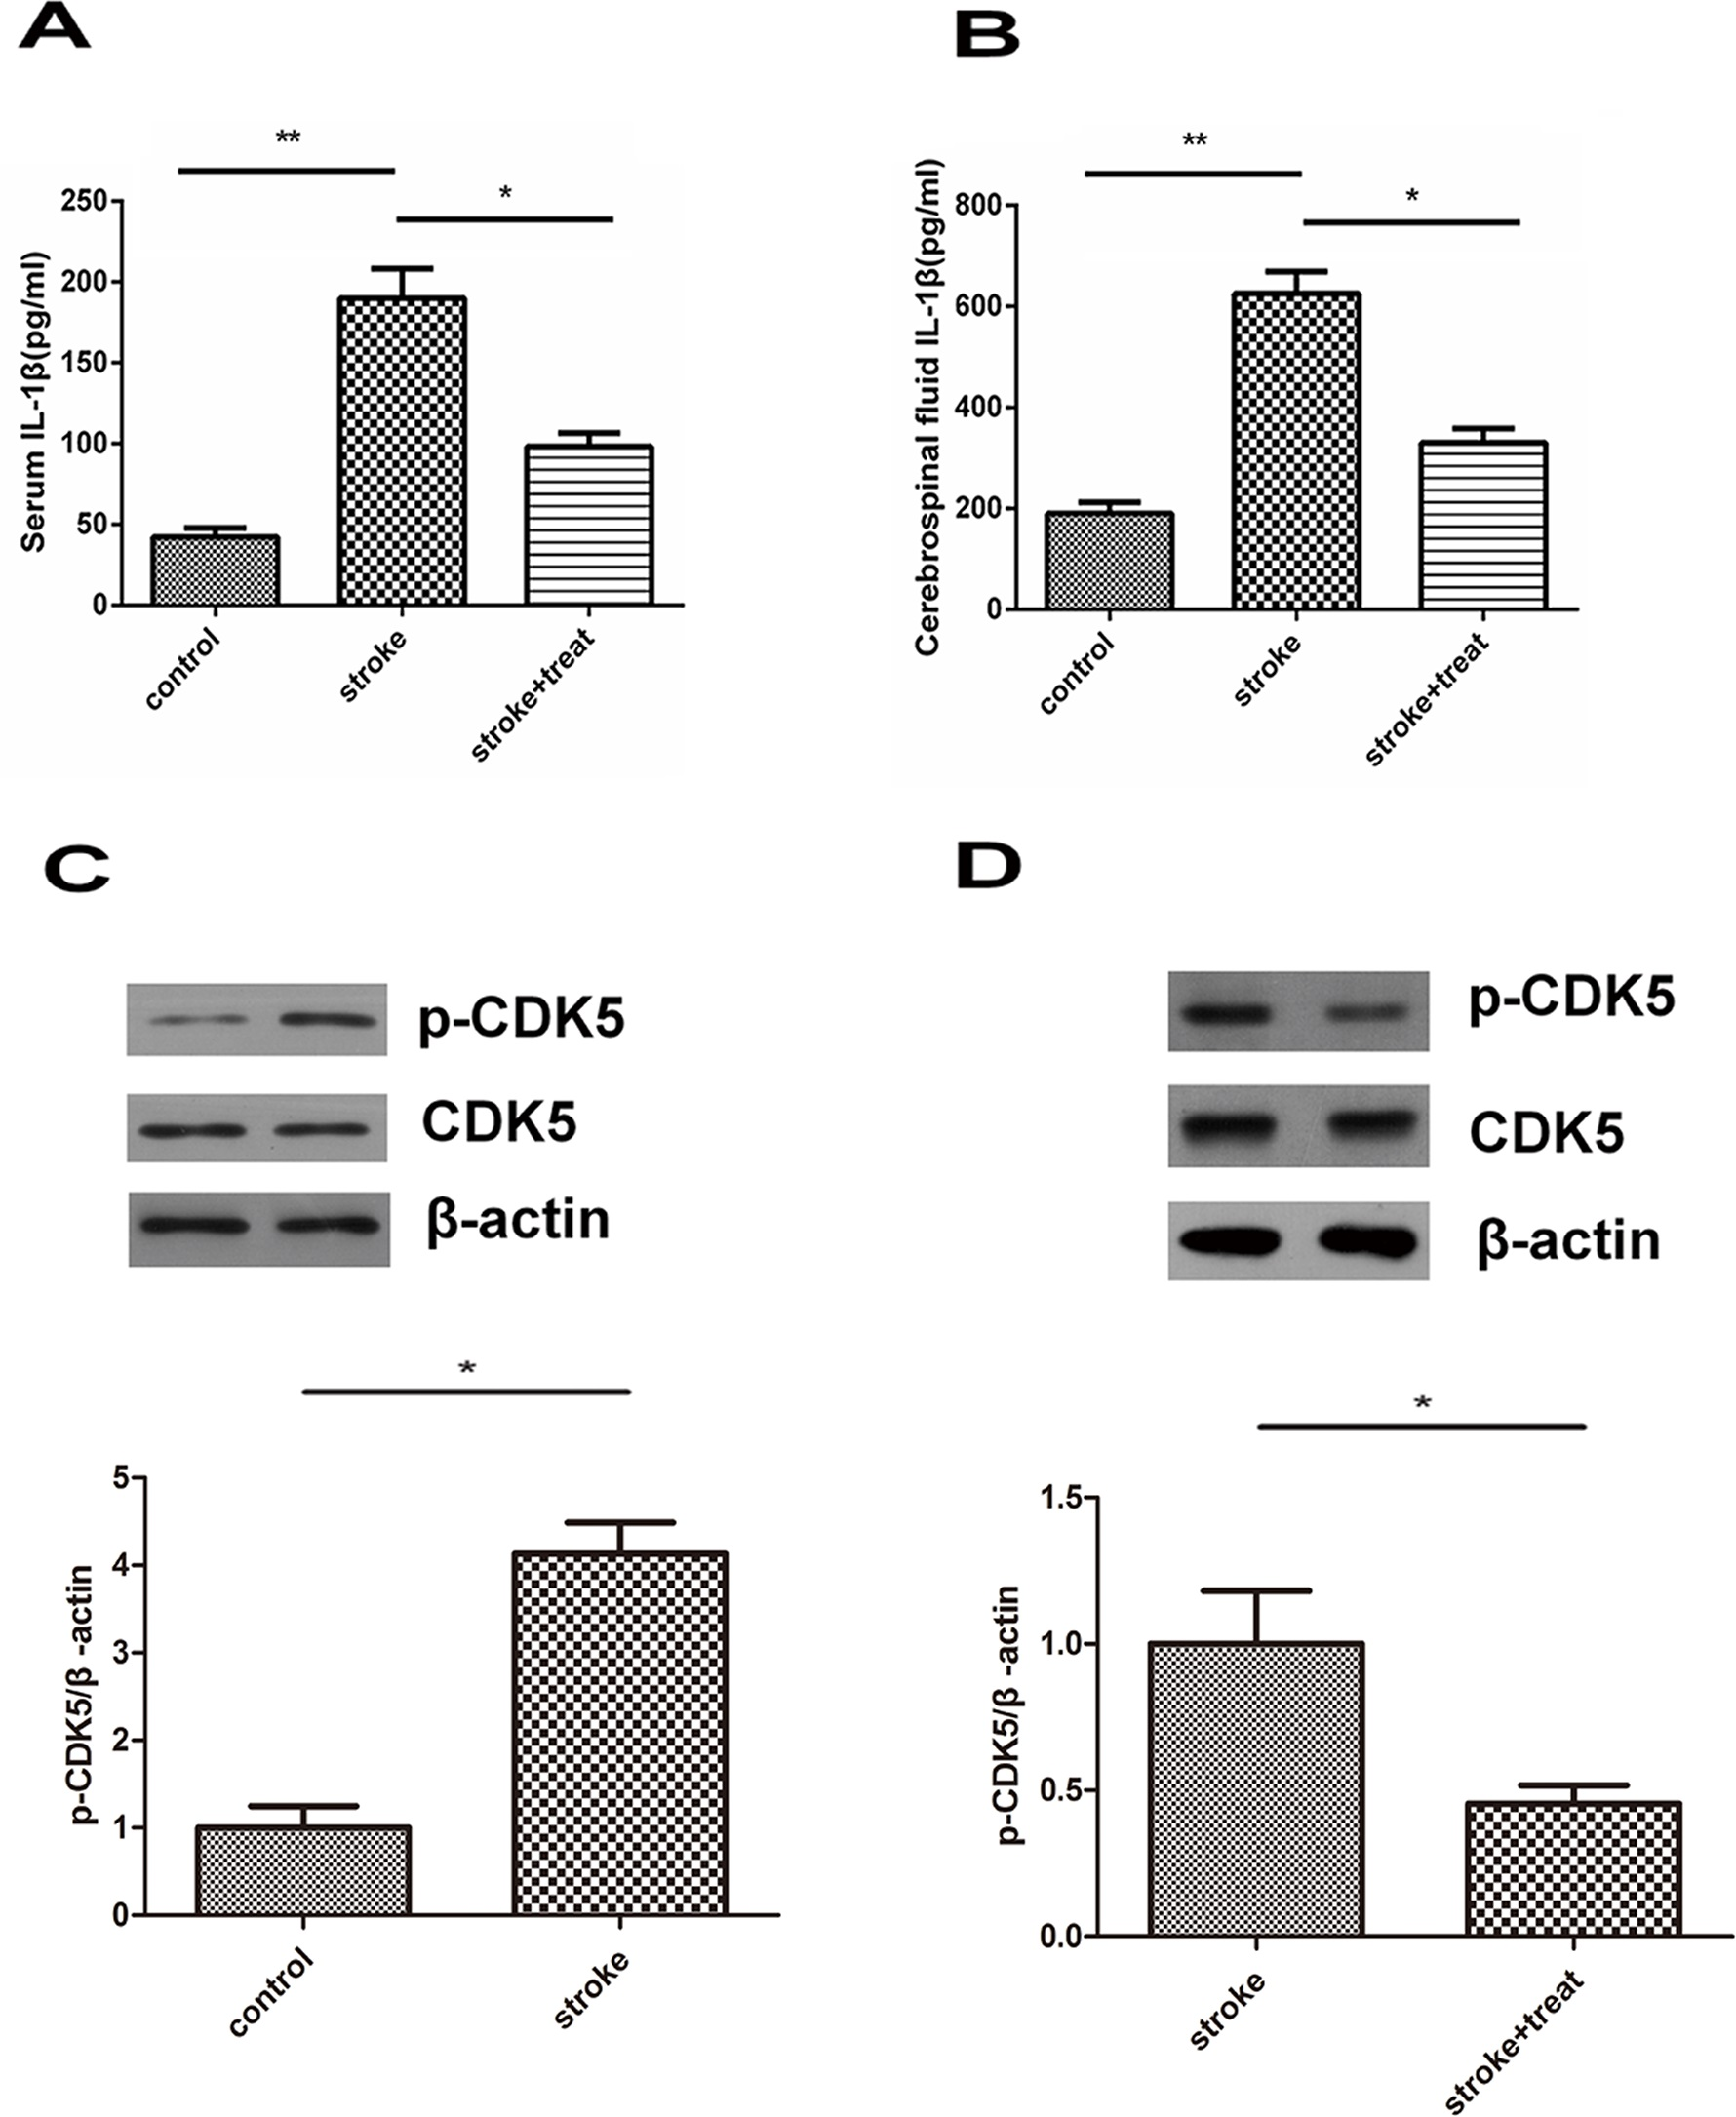 IL-1β and CDK5 levels in a murine model of ischemic stroke. Animals were divided into control, ischemic stroke, or ischemic stroke + hypothermia treatment groups. Serum IL-1β content (A) and IL-1β level in the brain tissue (B) were assessed by ELISA. Six animals from each group were analyzed. (C, D) The protein expression of CDK5 and p-CDK5 in intracerebral ischemic penumbra or control brain tissues was measured by Western blotting. Six animals from each group were analyzed. *p<0.05; **p<0.01.